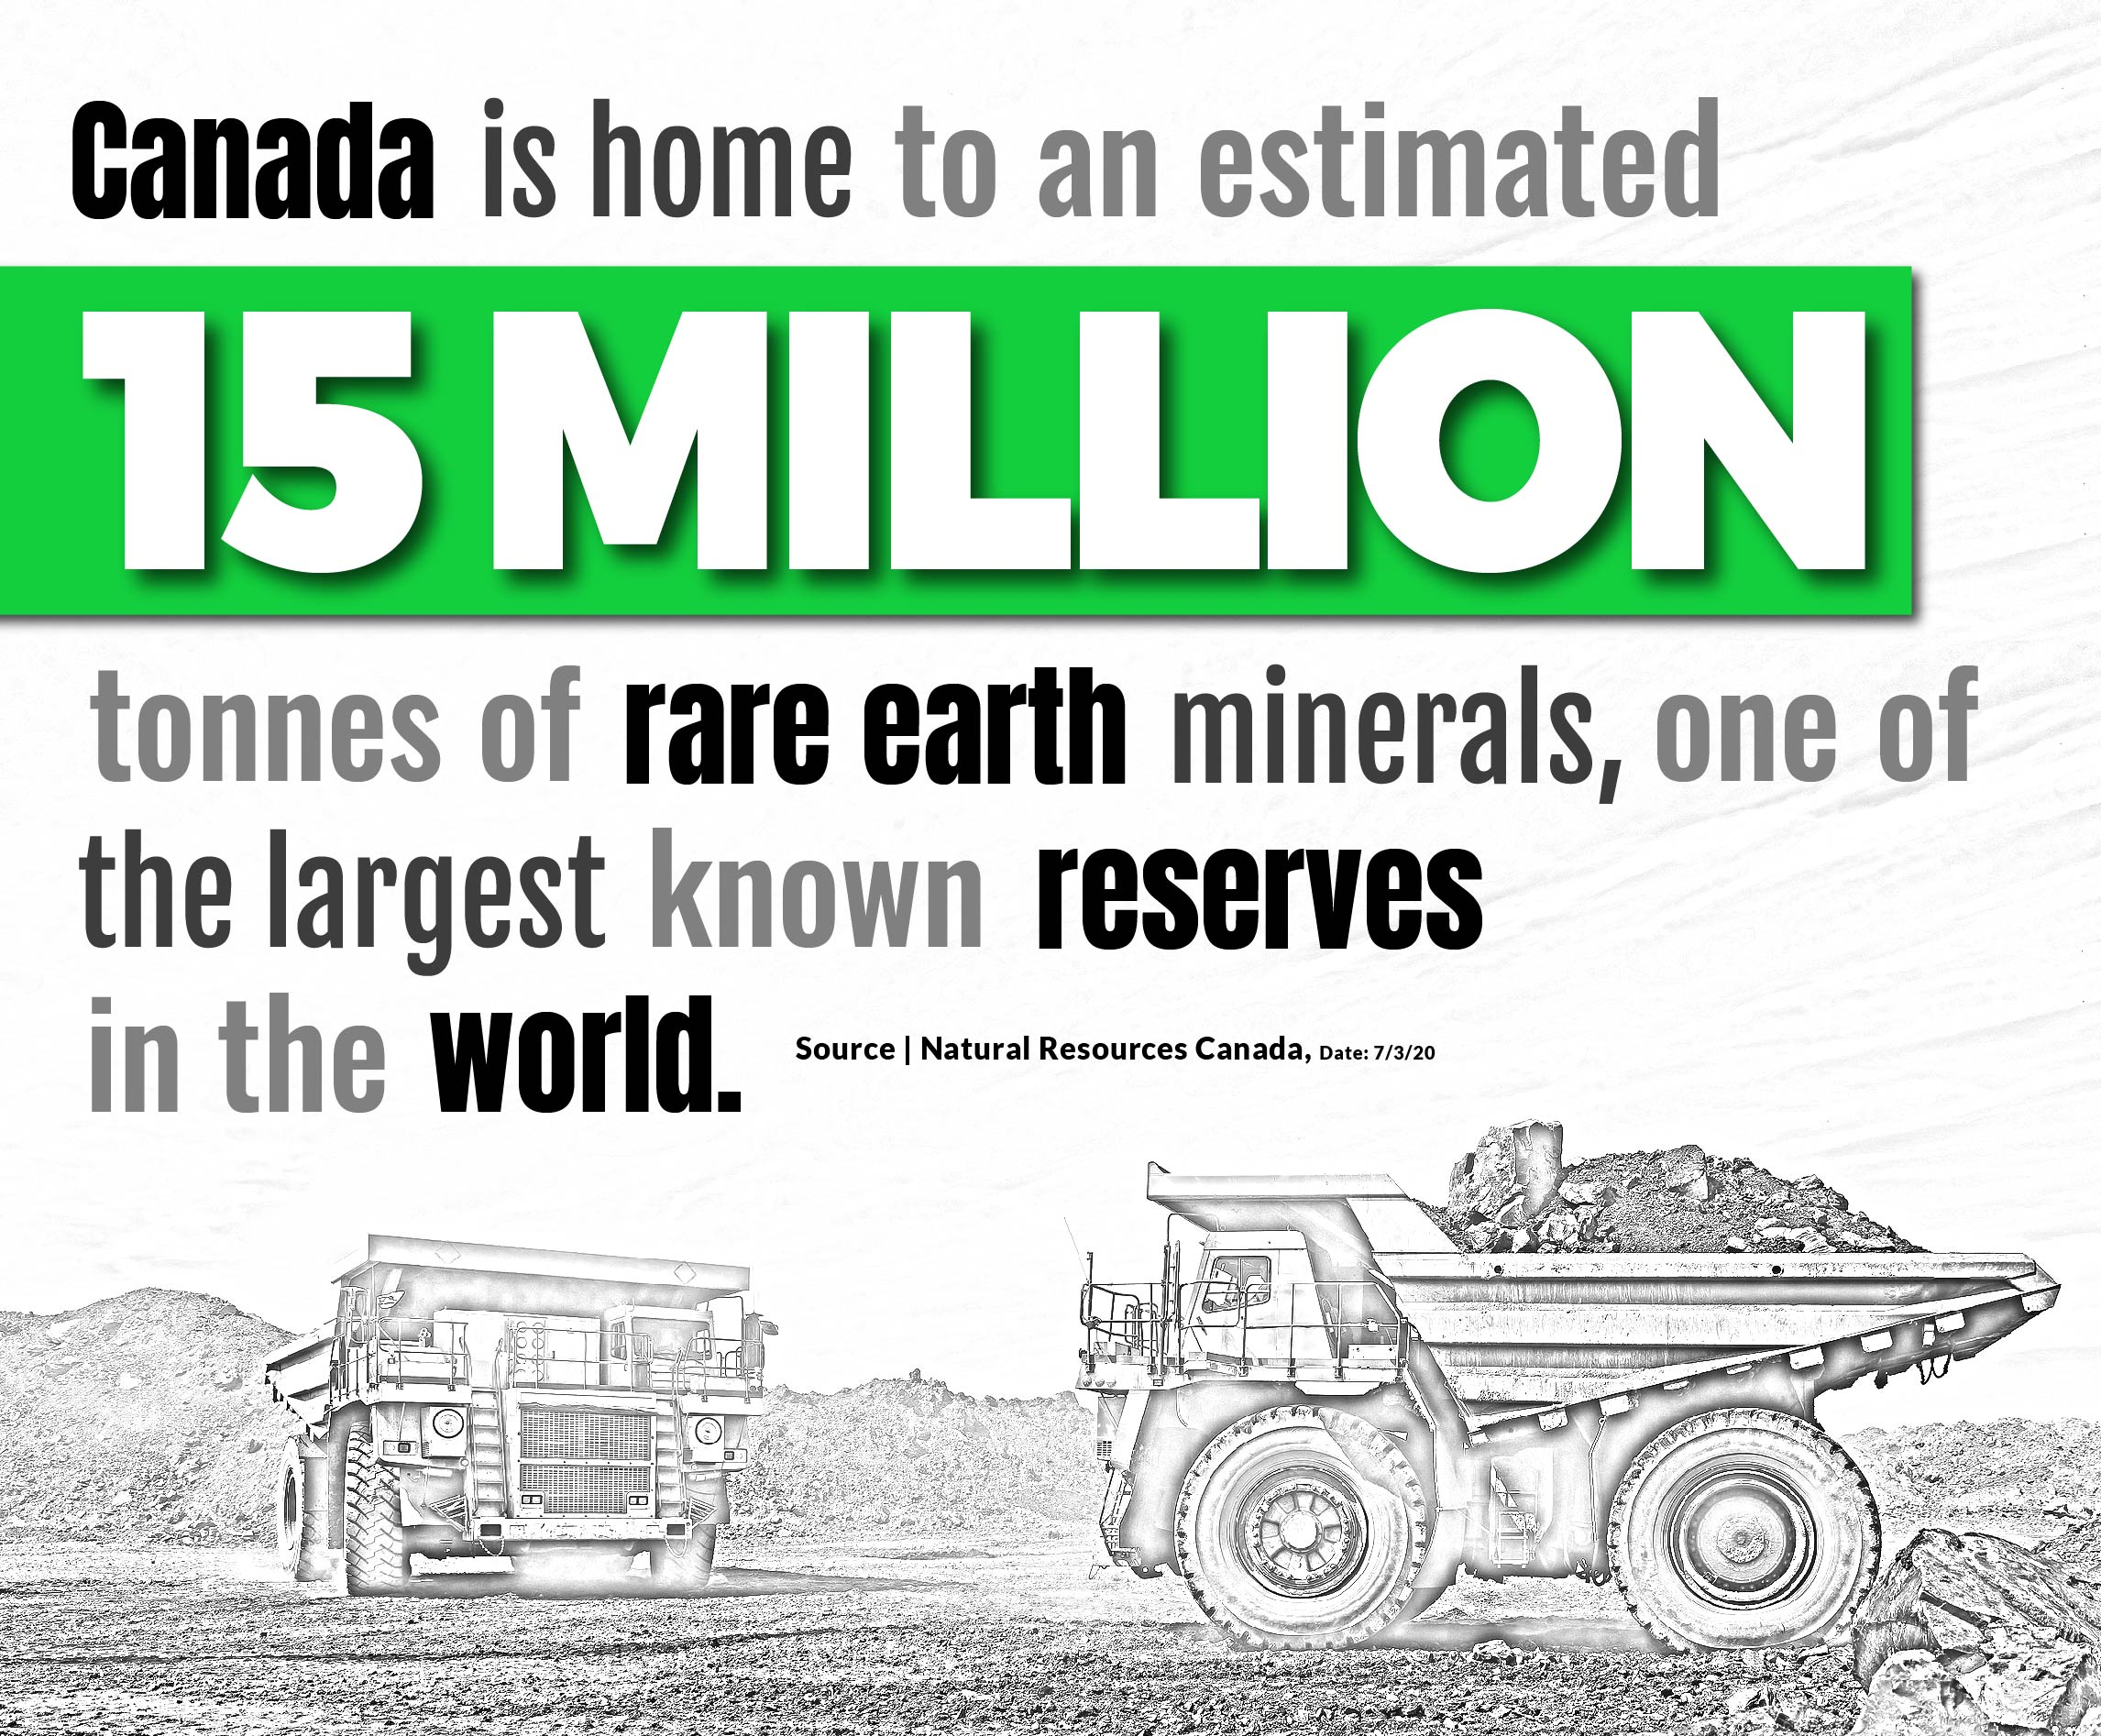 canada is home to 15 million tonnes of rare earth minerals